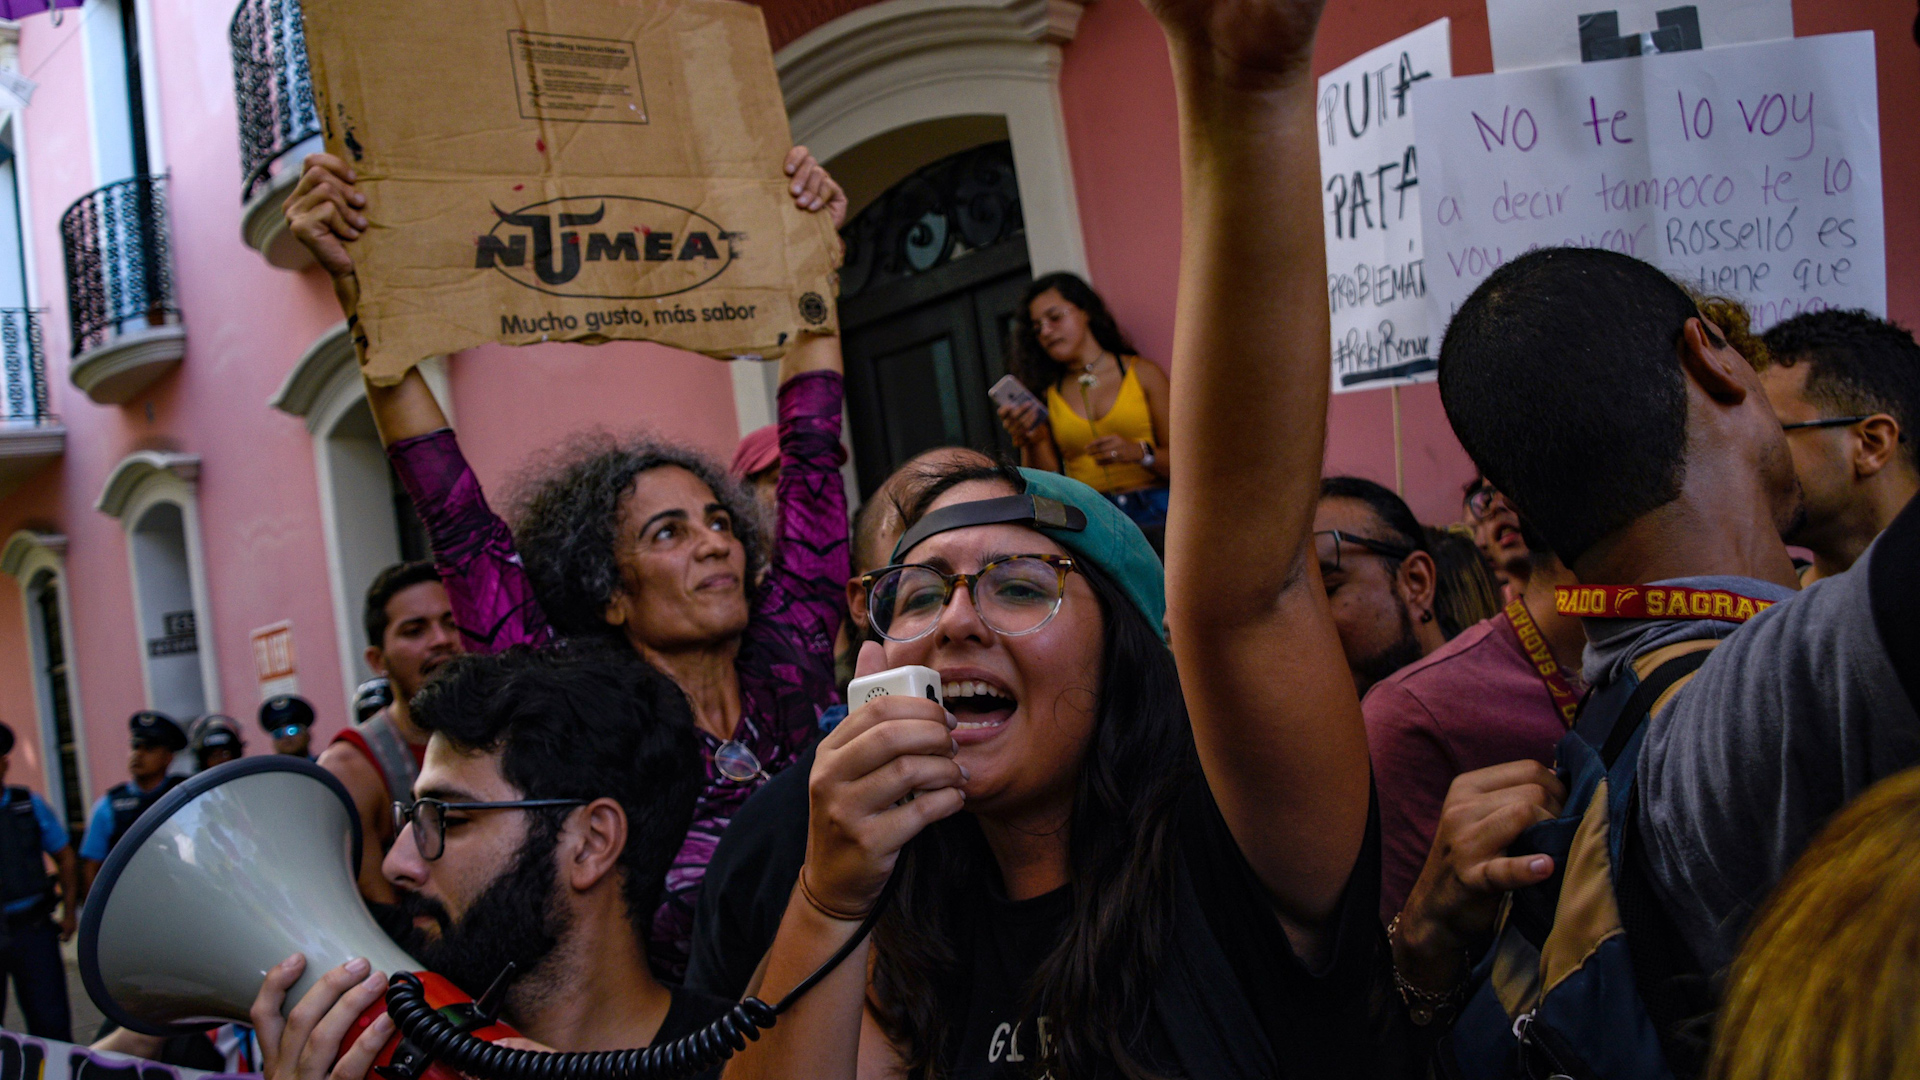 As New Political Scandals Engulf Puerto Rico, How Much More Can The Island Take?